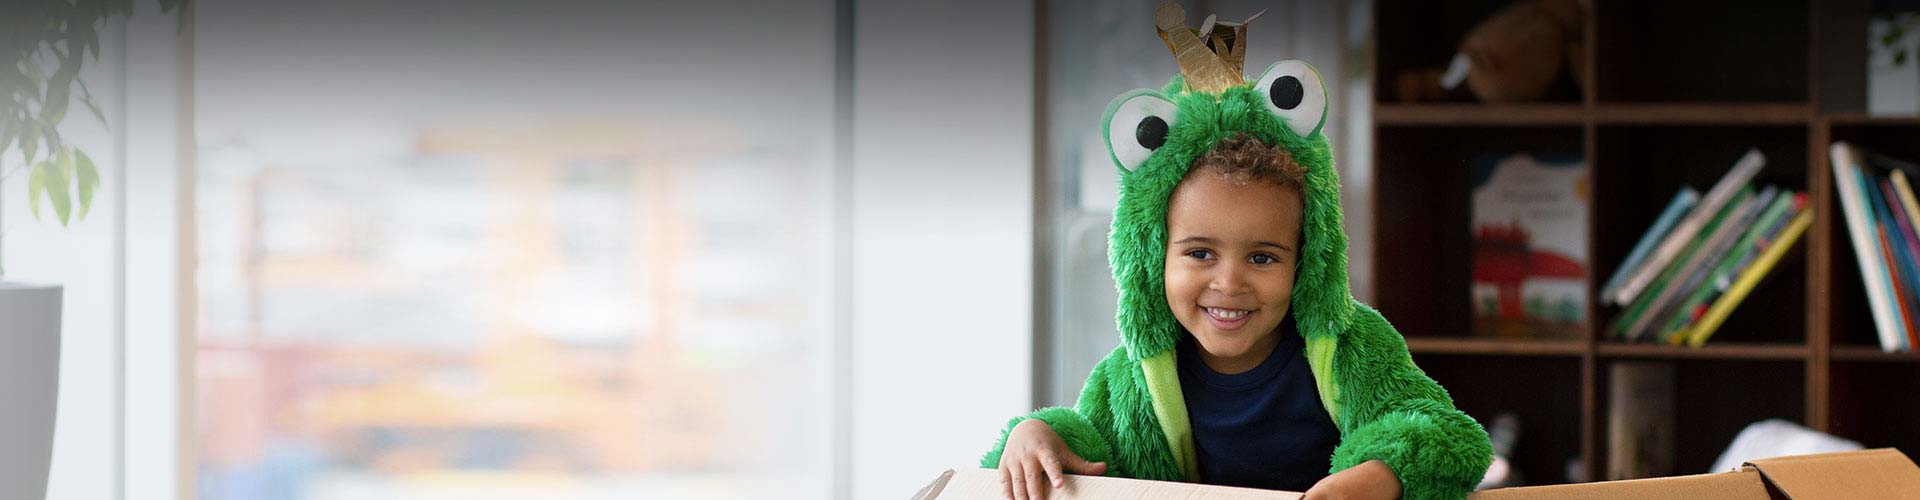 Child wearing Opn Play hearing aids in a costume